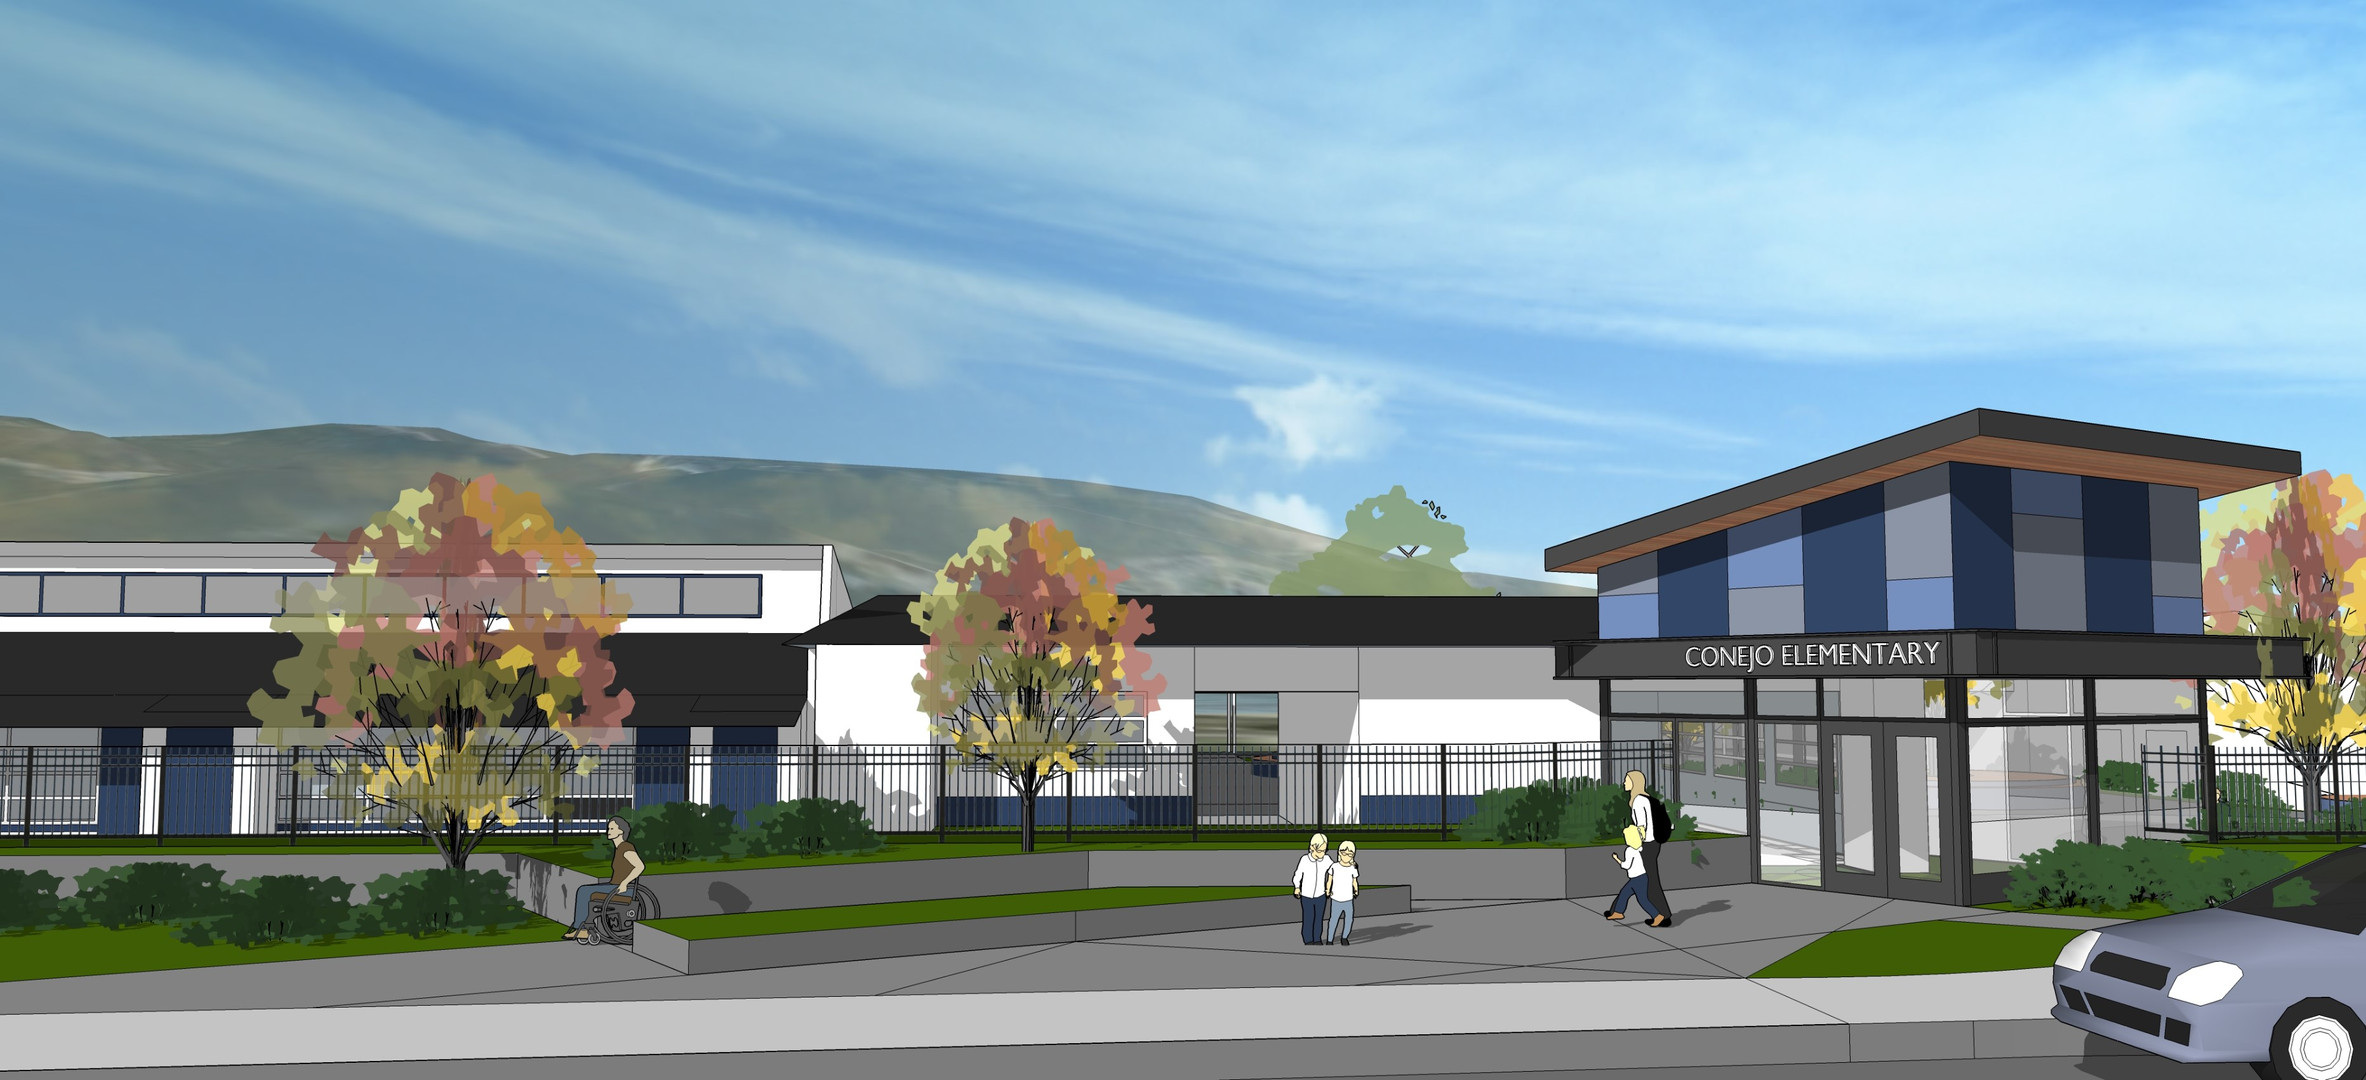 Conejo Elementary- Secure Campus Entrance (Design)